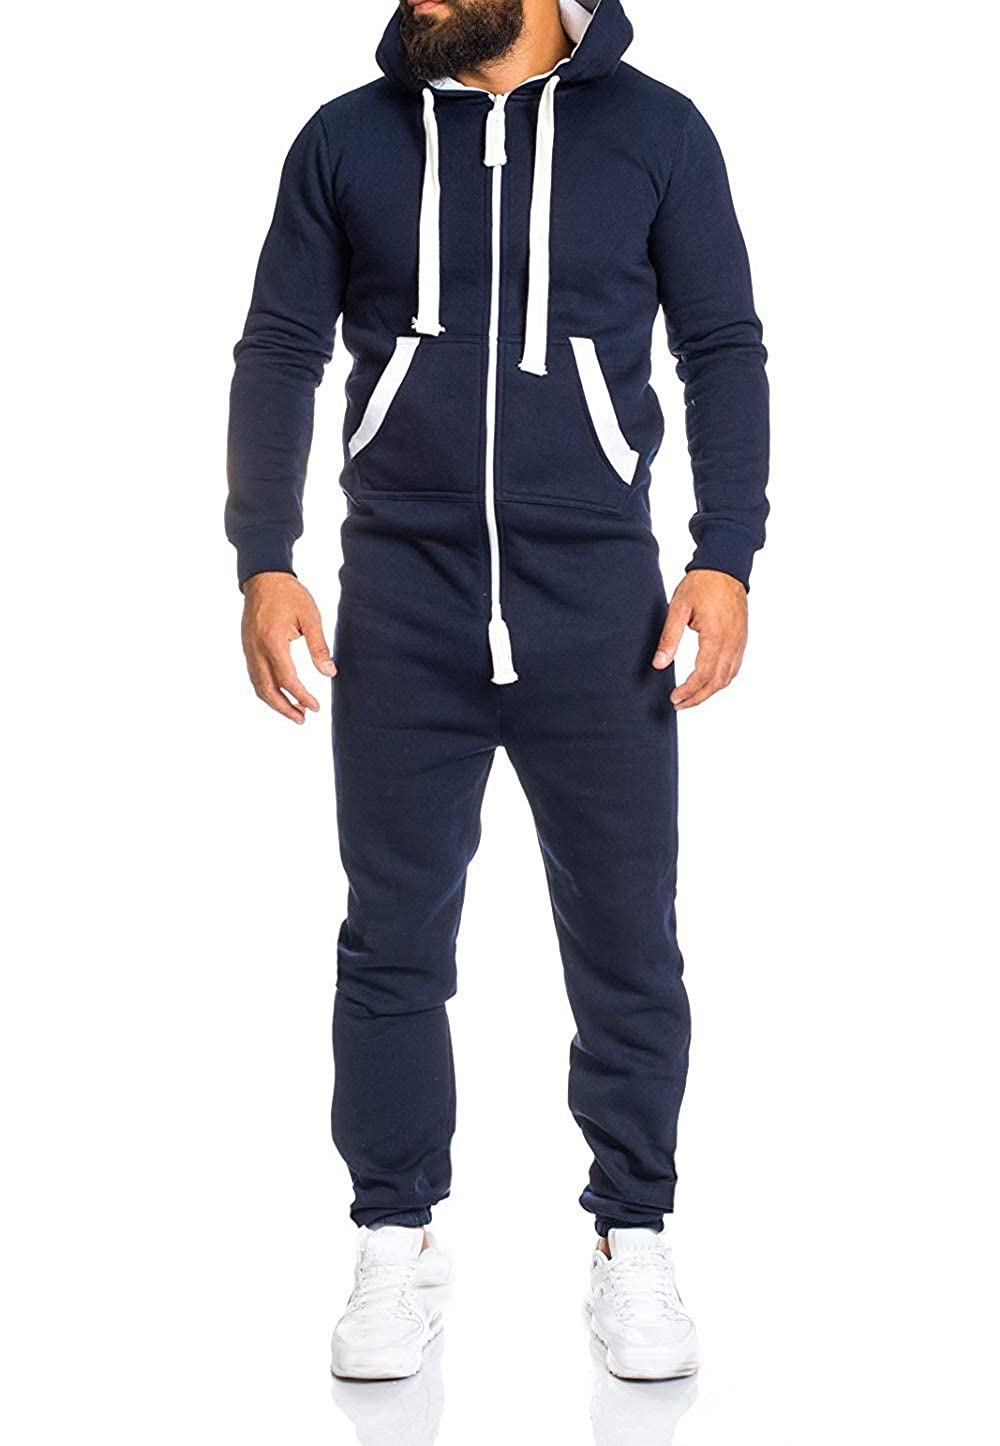 Mens Long Sleeve Overall Jumpsuit Hoodies Zipper One Piece Tracksuit All in one